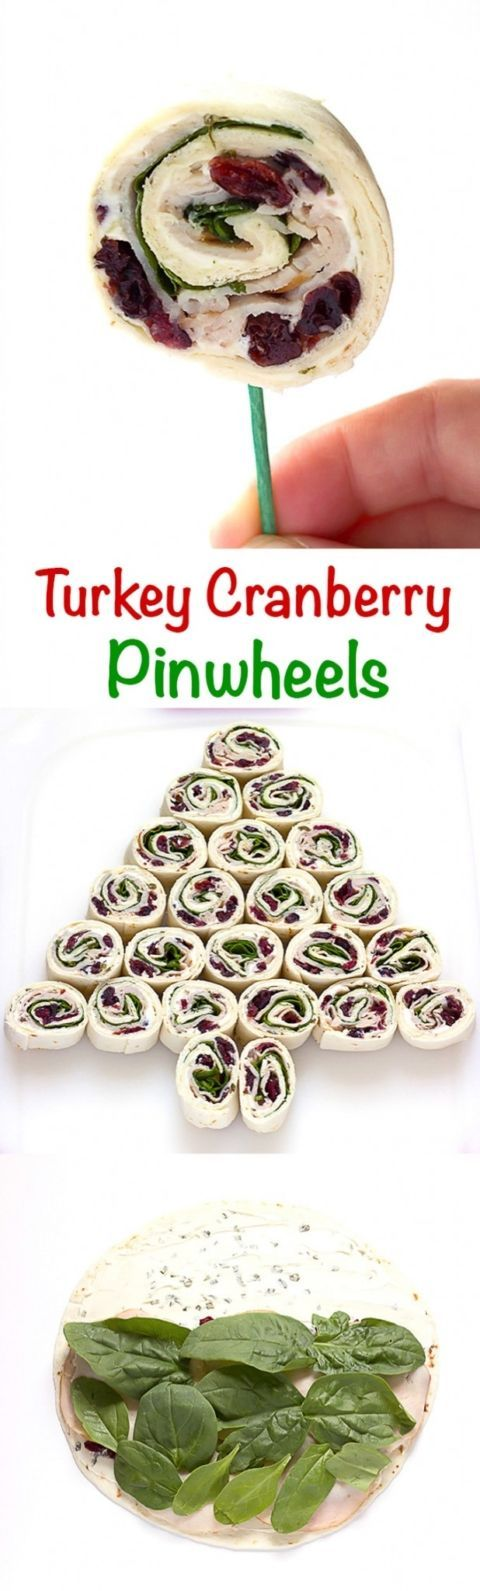 Turkey Cranberry Pinwheels   The Best Party Appetizers   Easy Party Appetizers   Crowd Pleasers   Finger Foods   Party Appetizer Recipes   Kids Party Appetizers   Dinner Party Appetizers   Pass Around Appetizers   Hors doeuvres   Make Ahead Party Appetizers   Vegetarian Party Appetizers   Non-Vegetarian Party Appetizers   Appetizers on a Stick   Repinned by @purplevelvetpro   www.purplevelvetproject.com